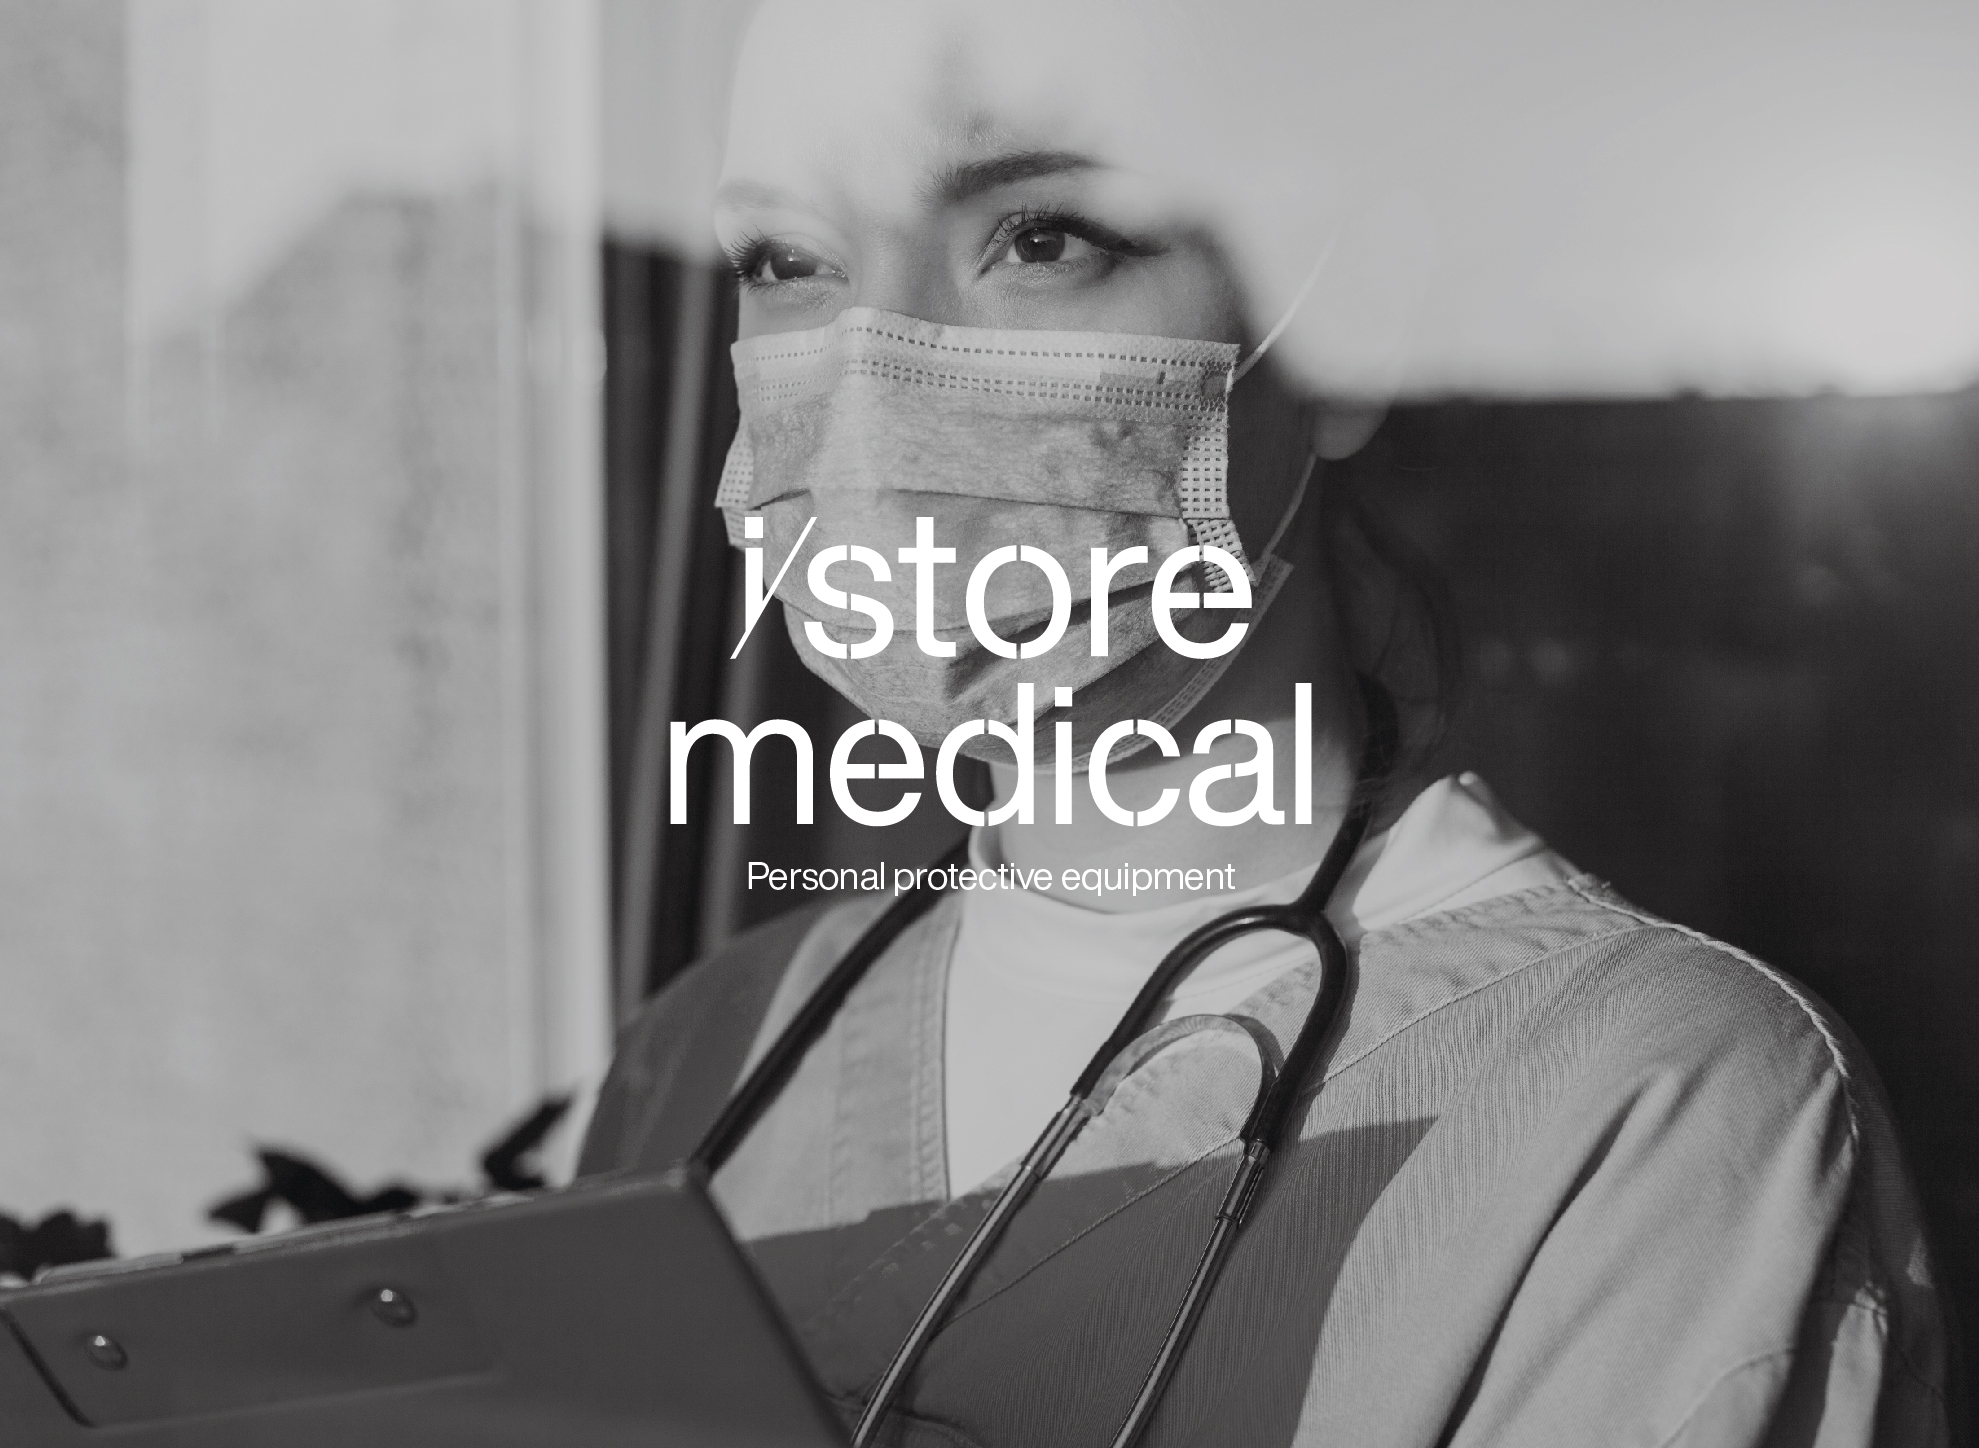 i-store Medical – Personal protective equipment